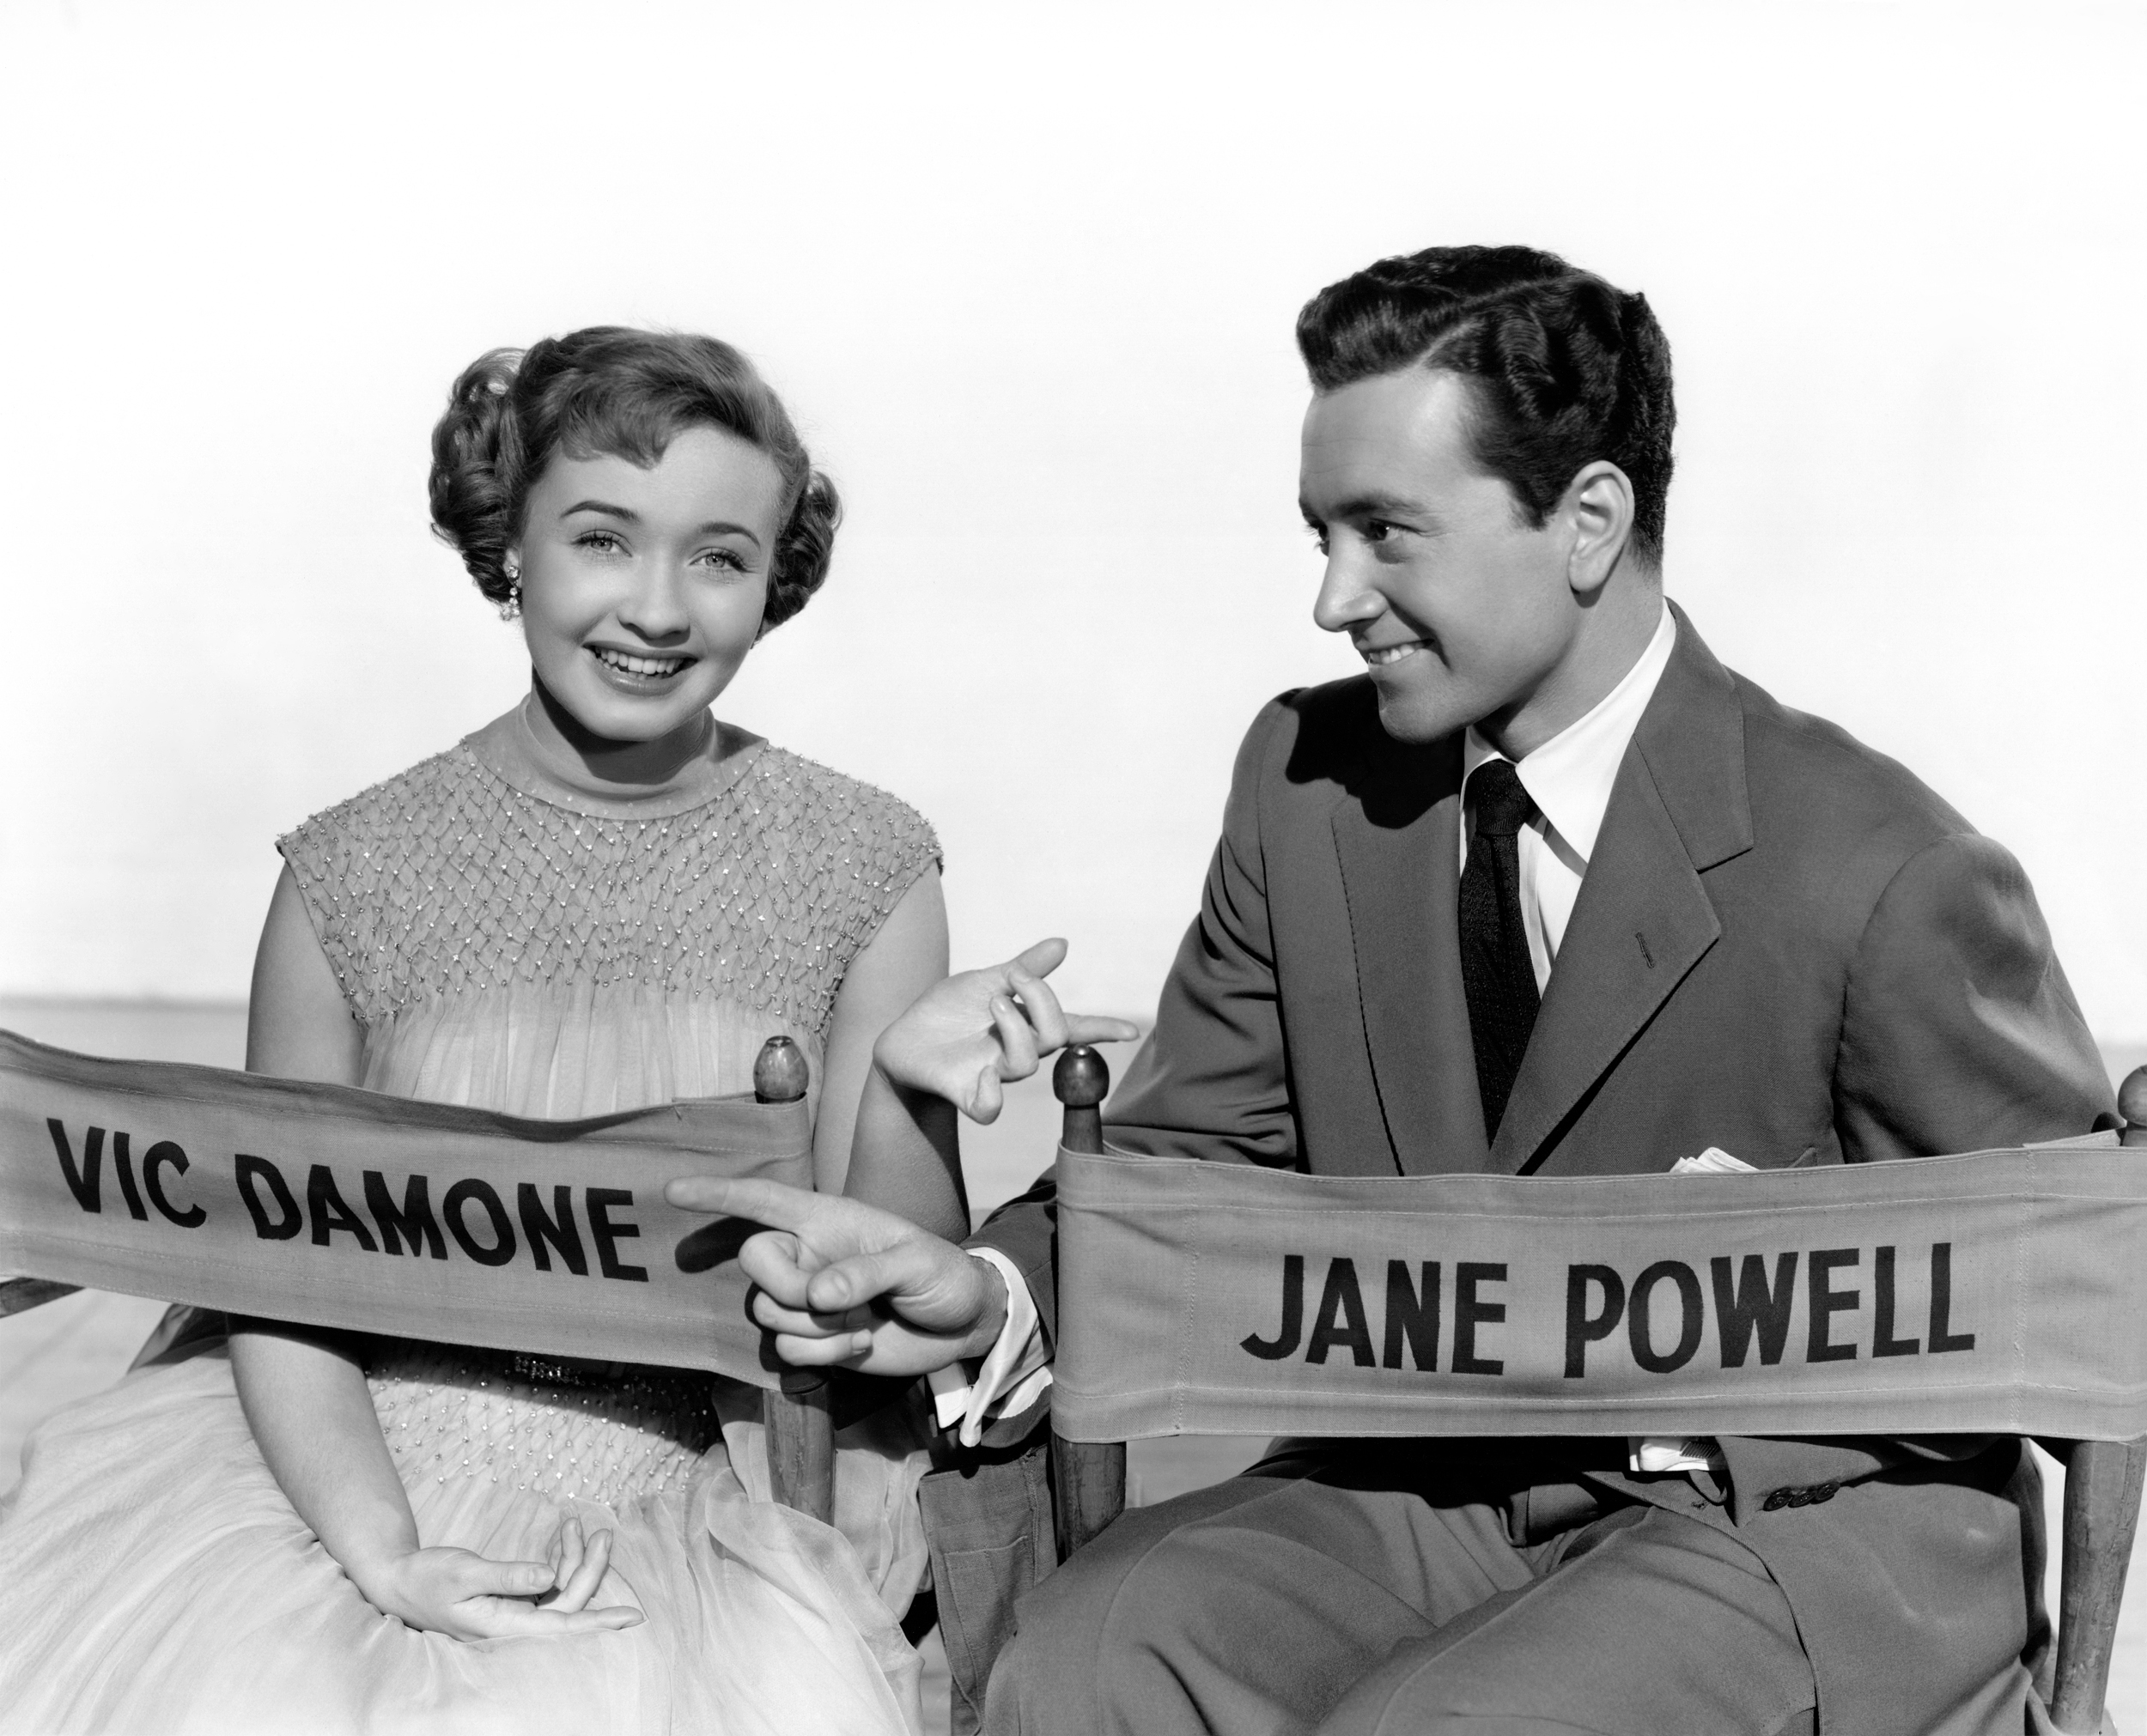 Jane Powell in Rich, Young and Pretty with With Vic Damone (Courtesy of Ricardo)